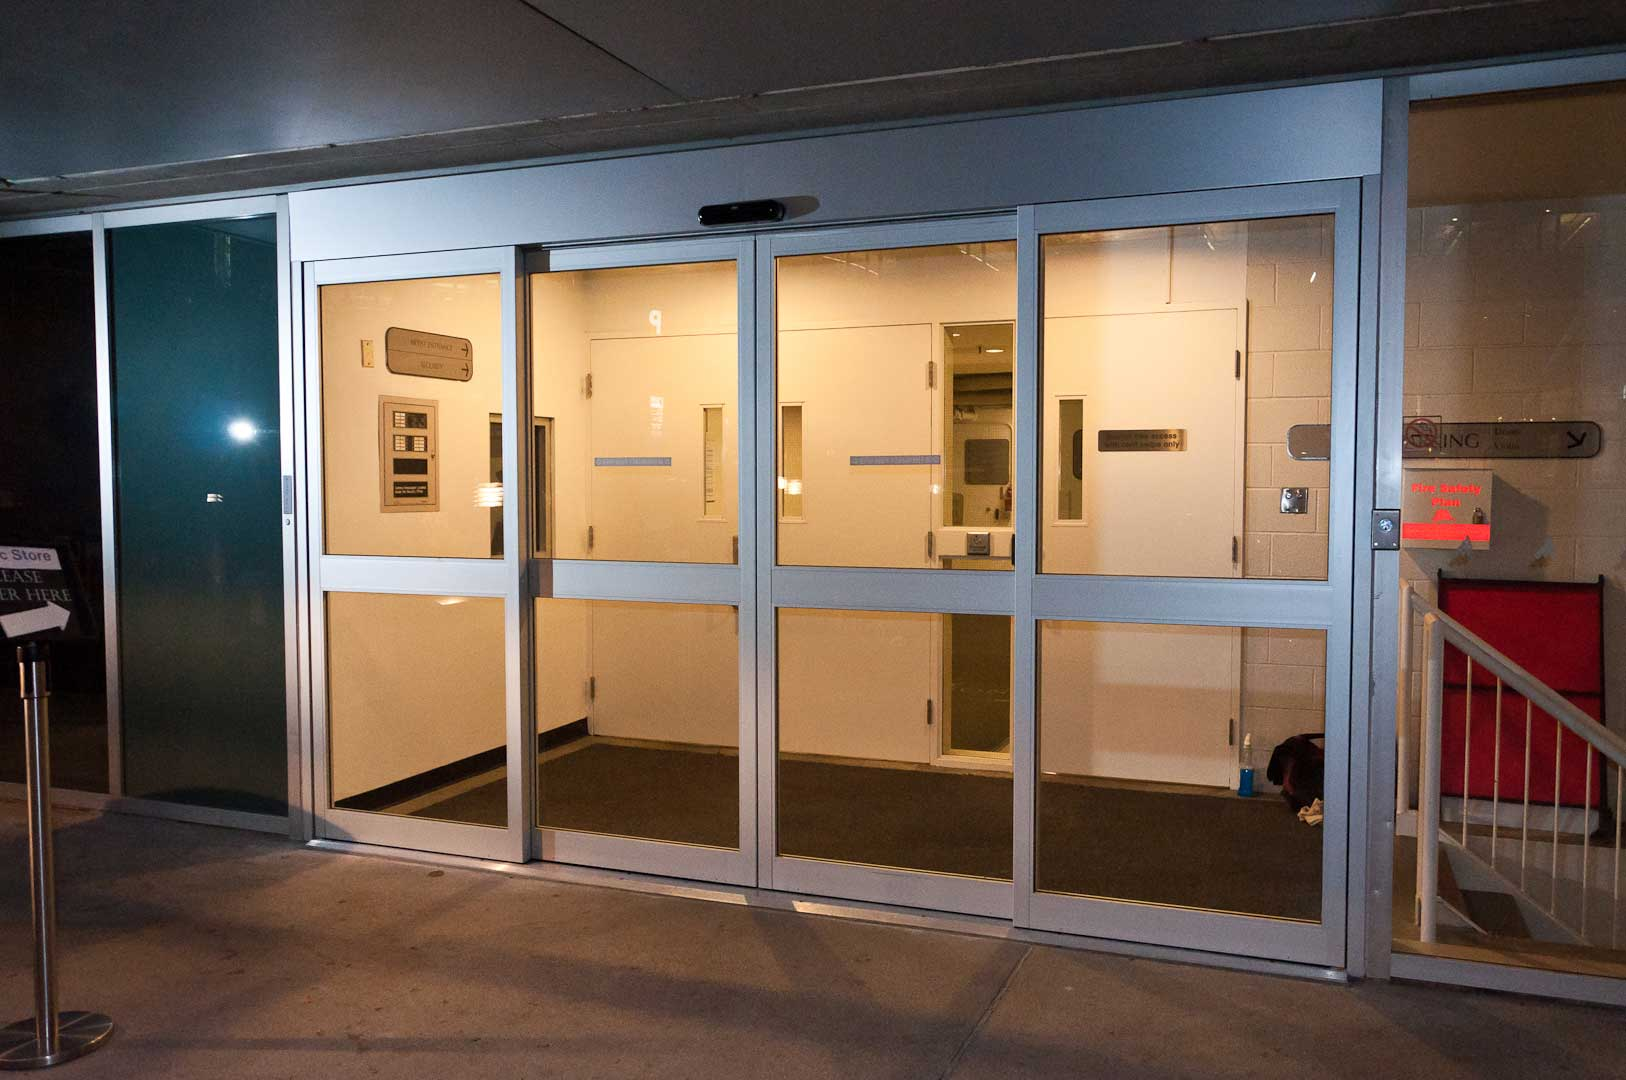 Tormax TX9300 Sliding Door System at Roy Thompson Hall Installed by Explore1.ca